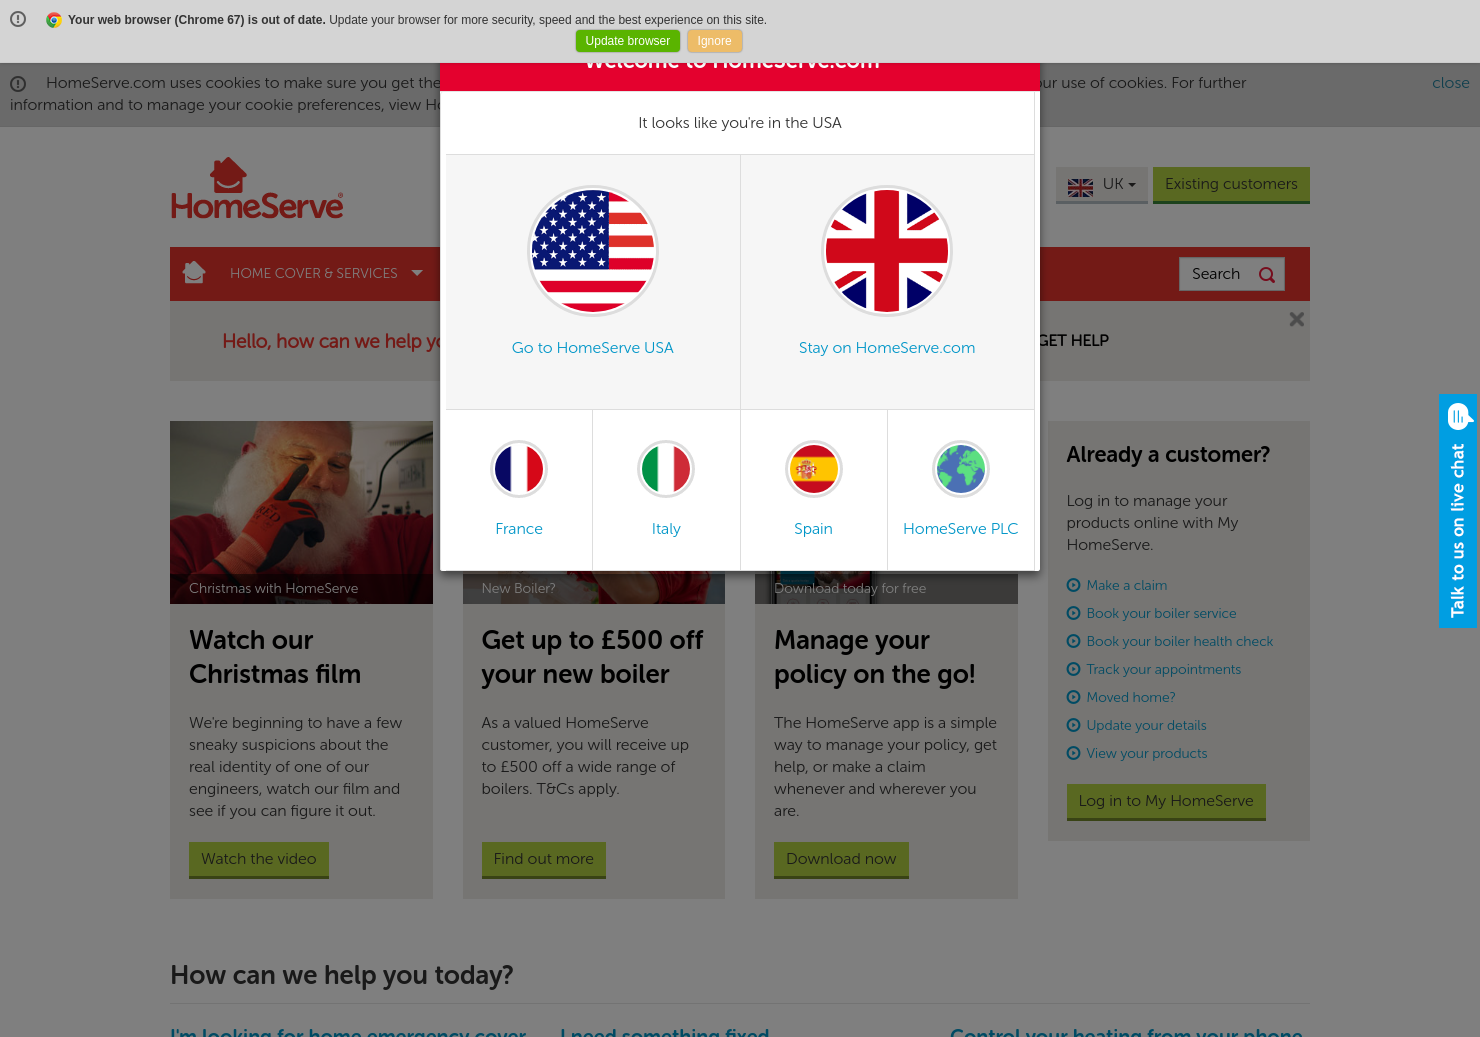 Homeserve Home Page